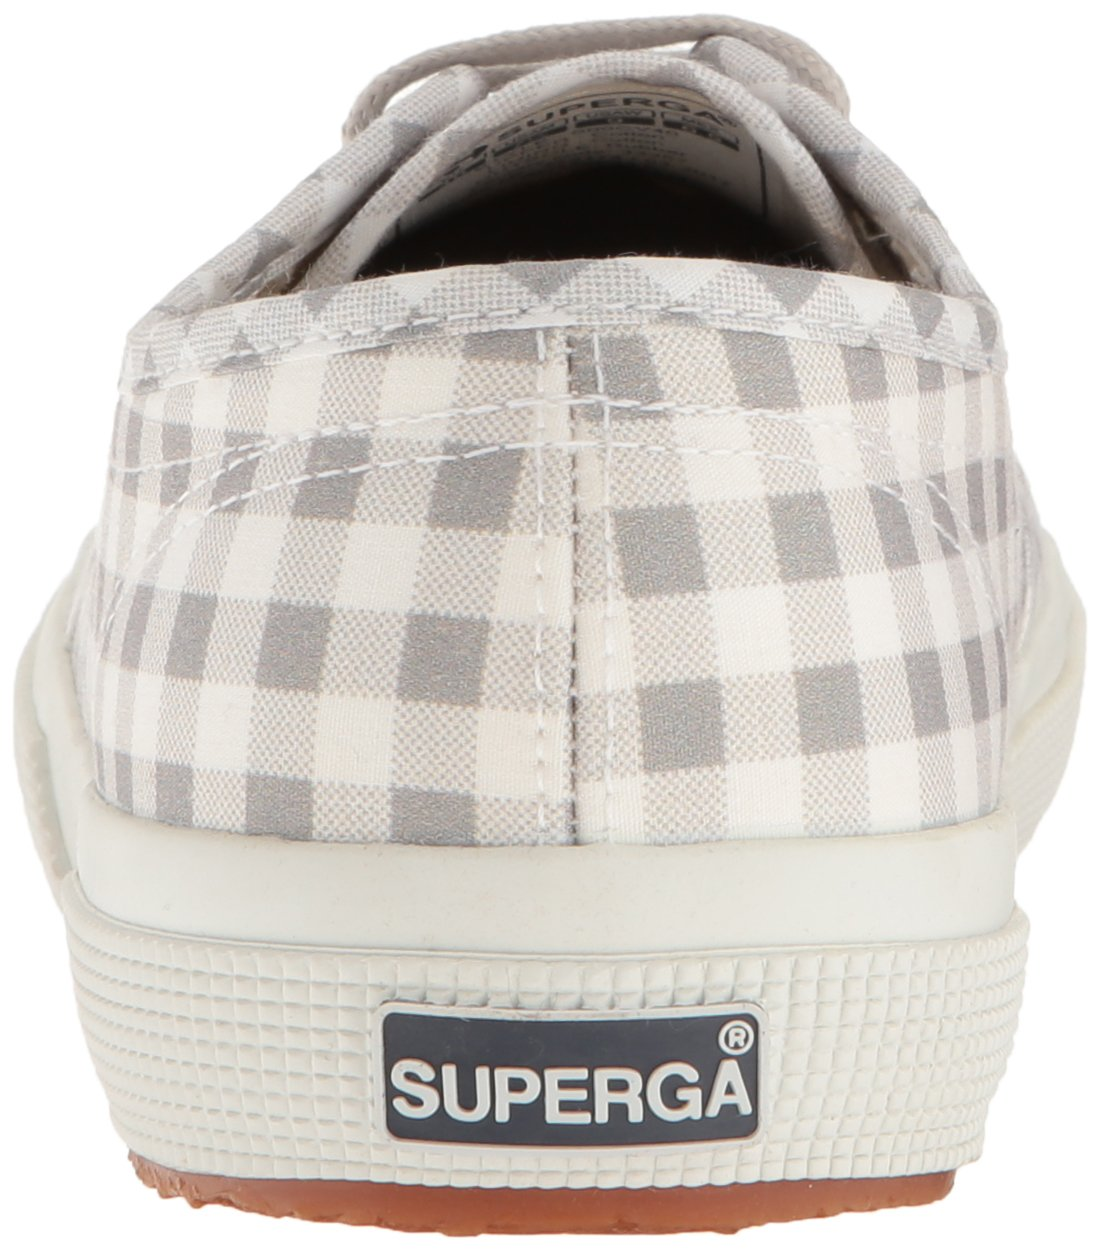 Superga Women's 2750 Gingham Sneaker B06XCJZKLF 35 M EU (5 US)|Grey